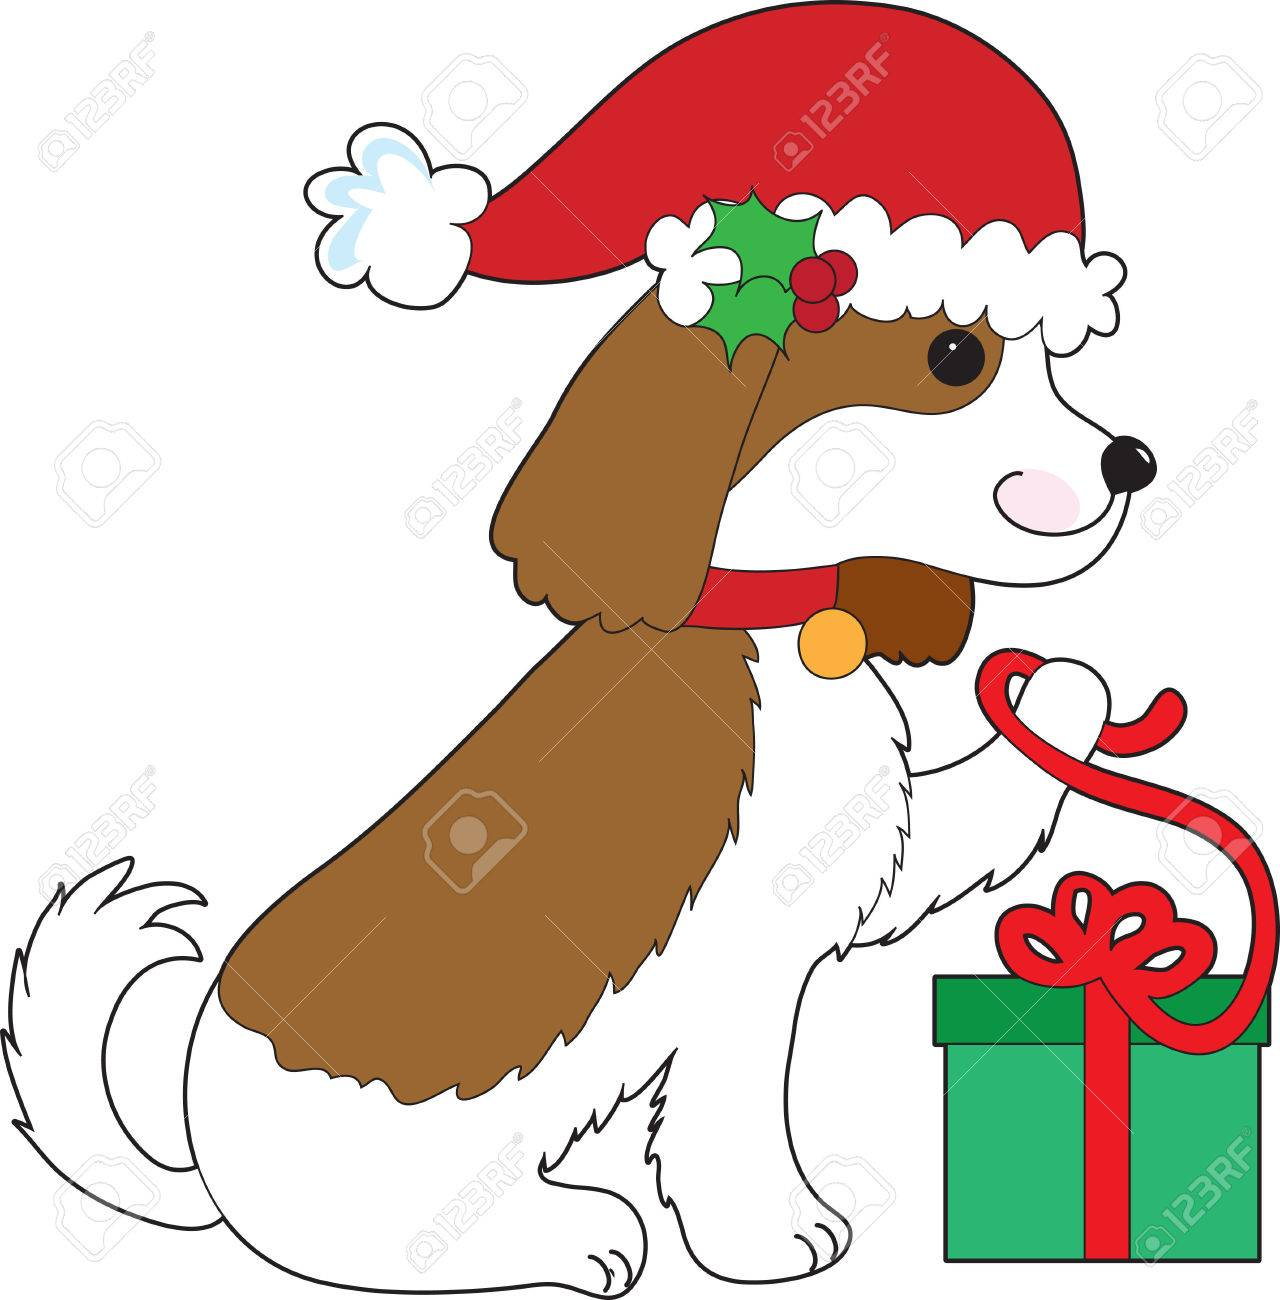 11 875 dog christmas stock illustrations cliparts and royalty free rh 123rf com merry christmas dog clipart merry christmas dog clipart